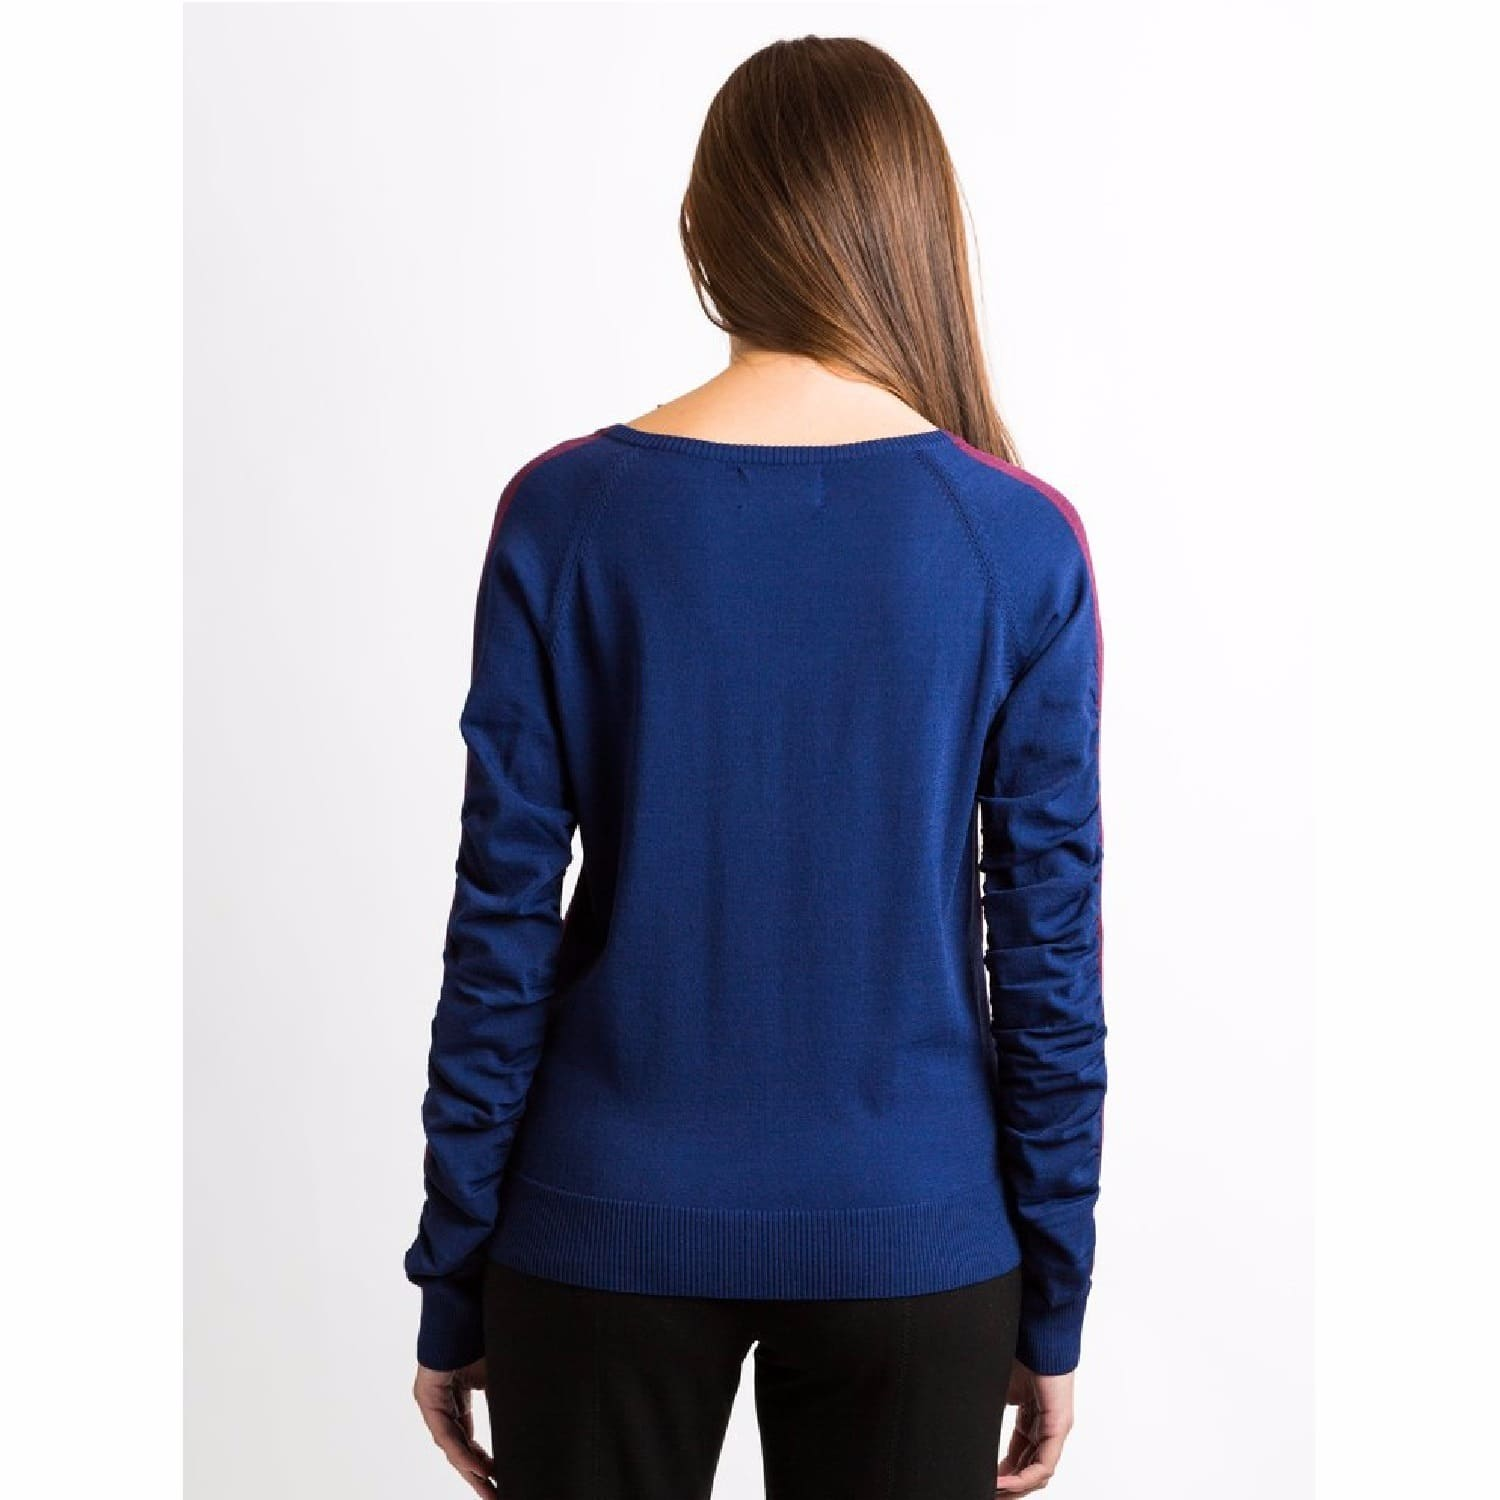 Navy and Wine Color Block V Neck Sweater | NY CHARISMA | Wolf & Badger